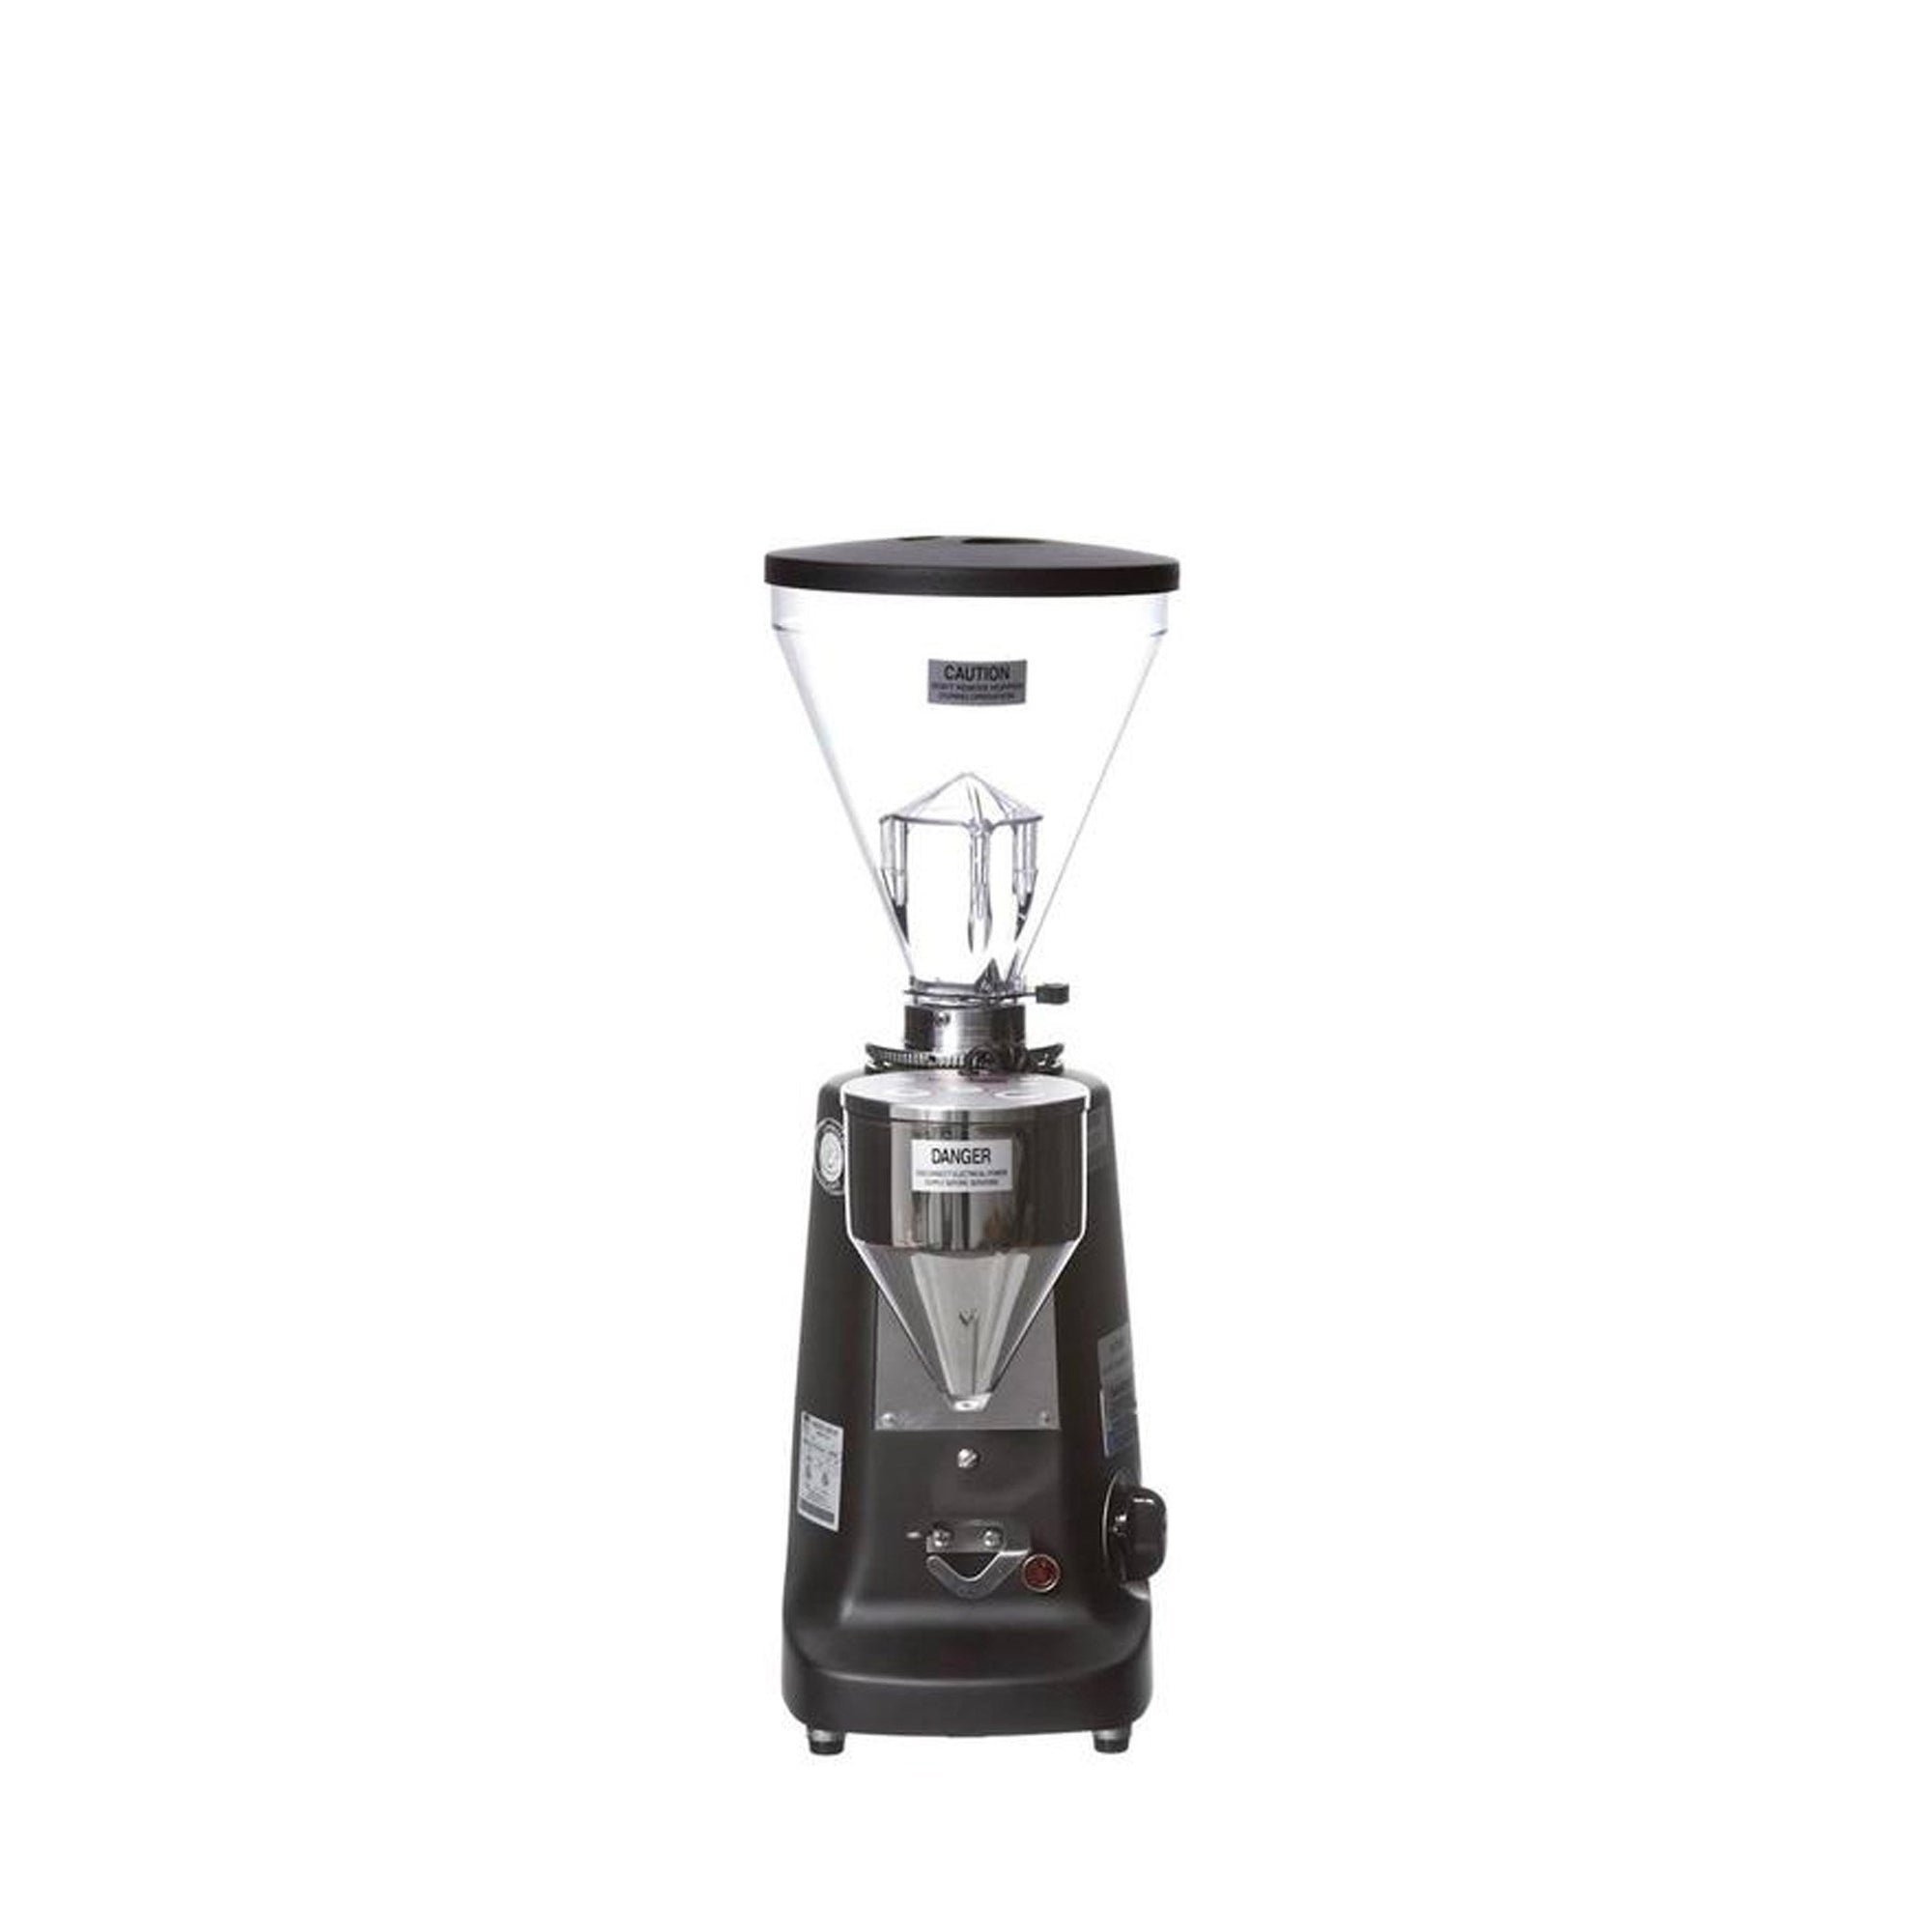 Mazzer - Super Jolly Electronic Grinder (Black)